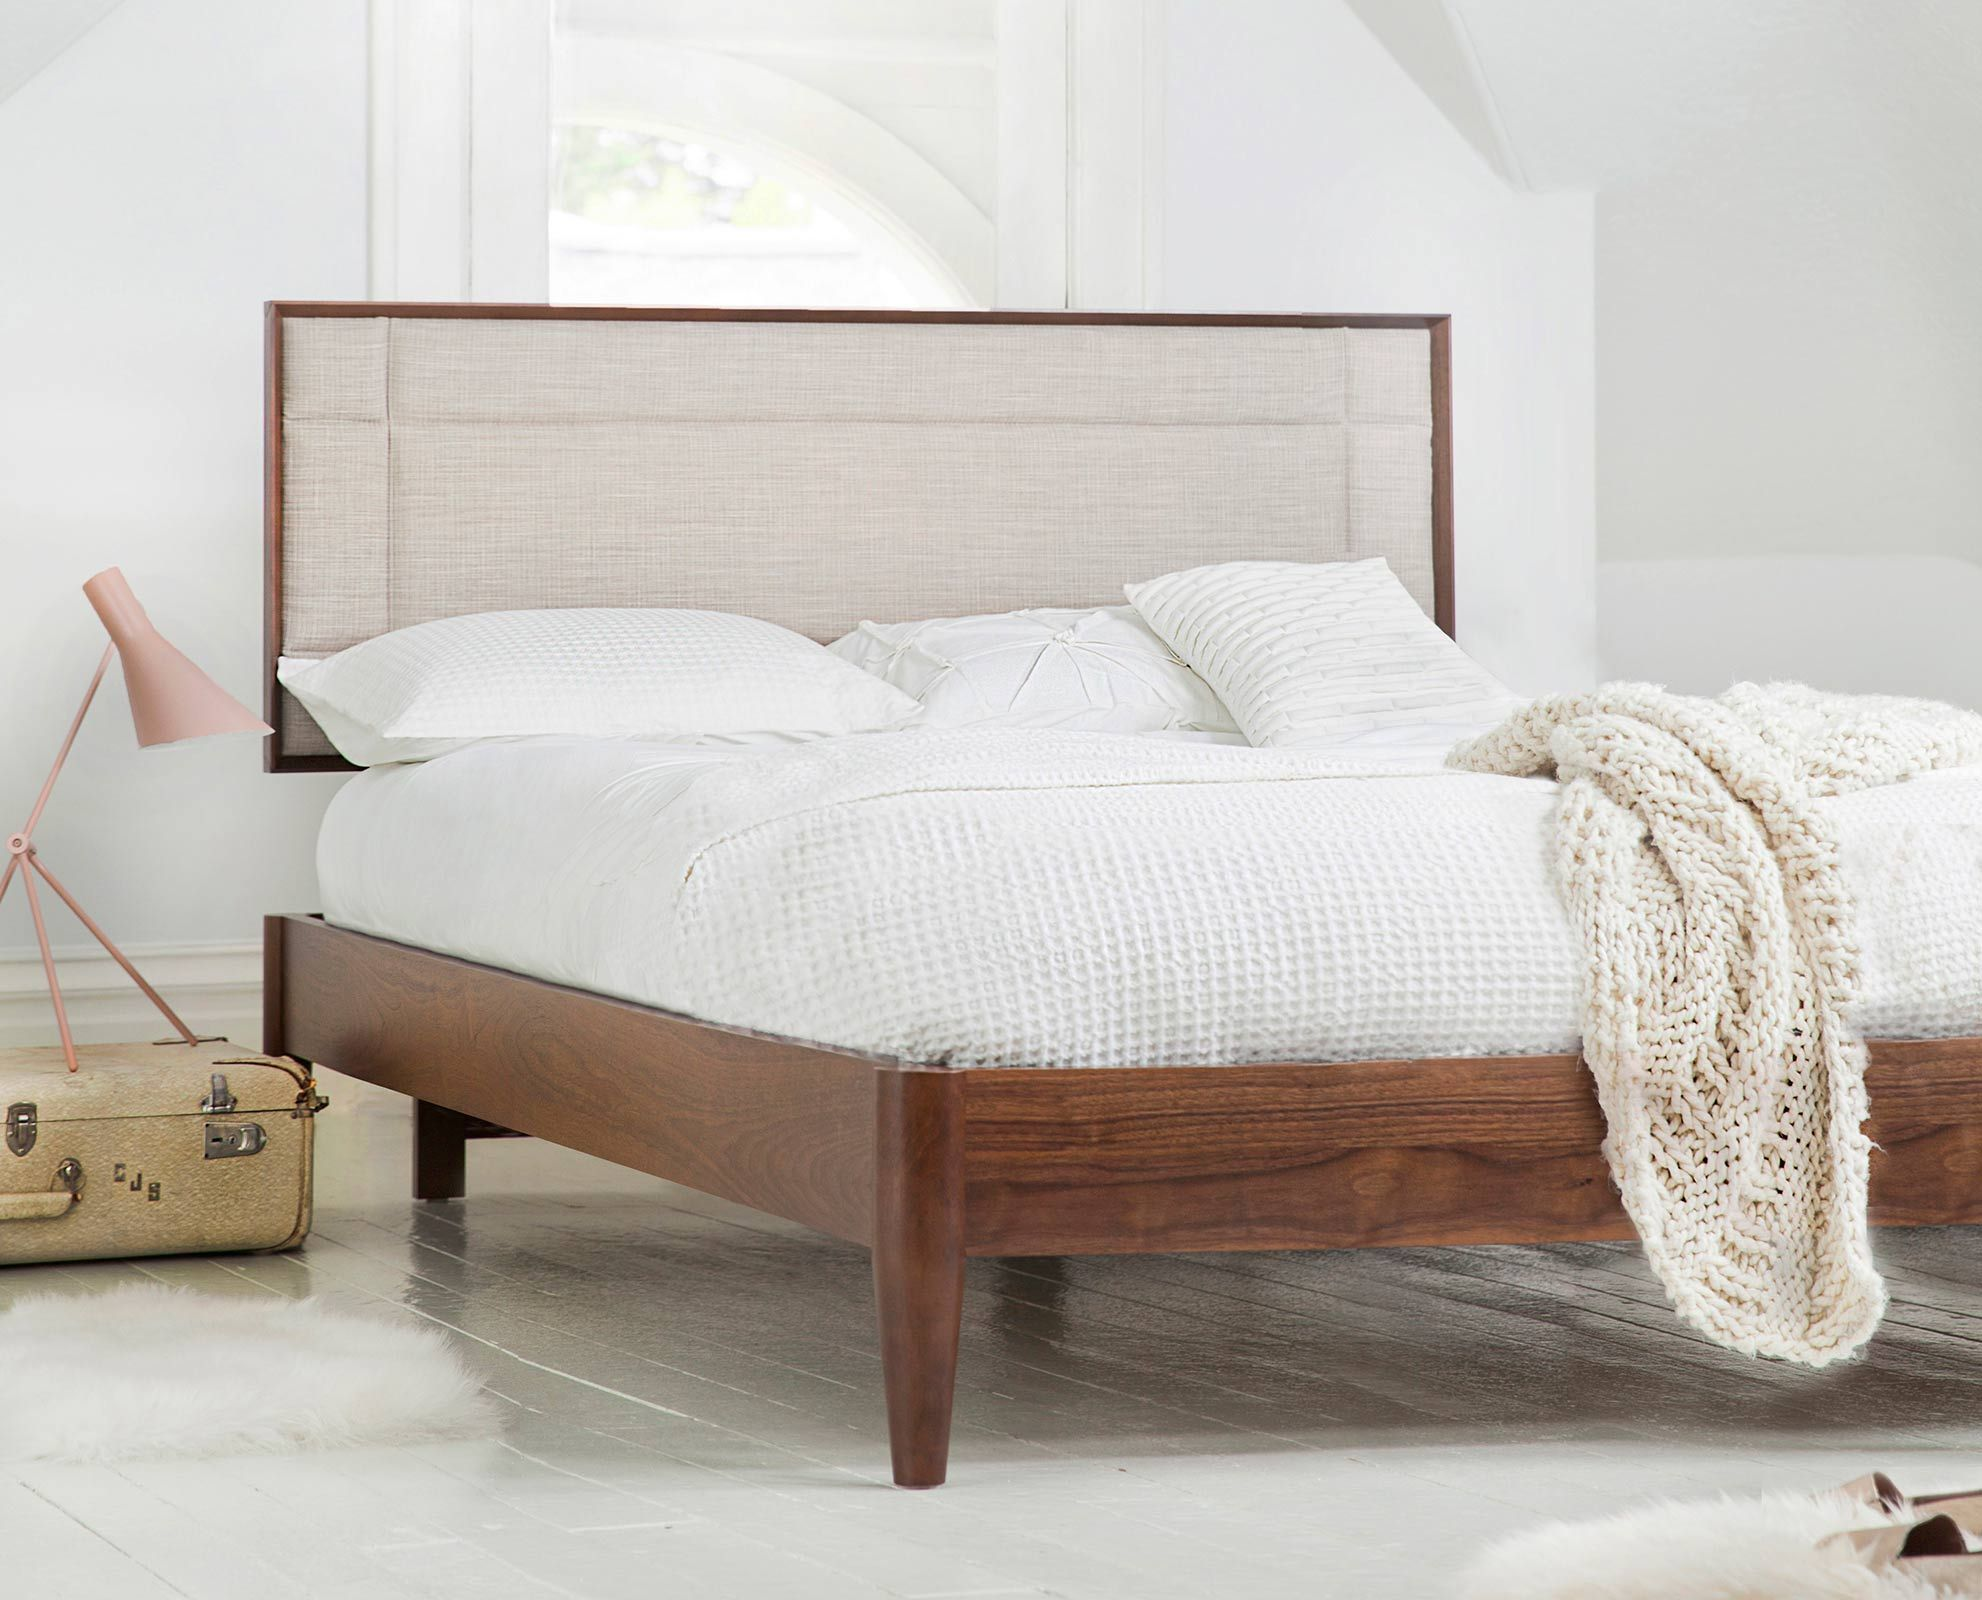 The Juneau Bed from Scandinavian Designs